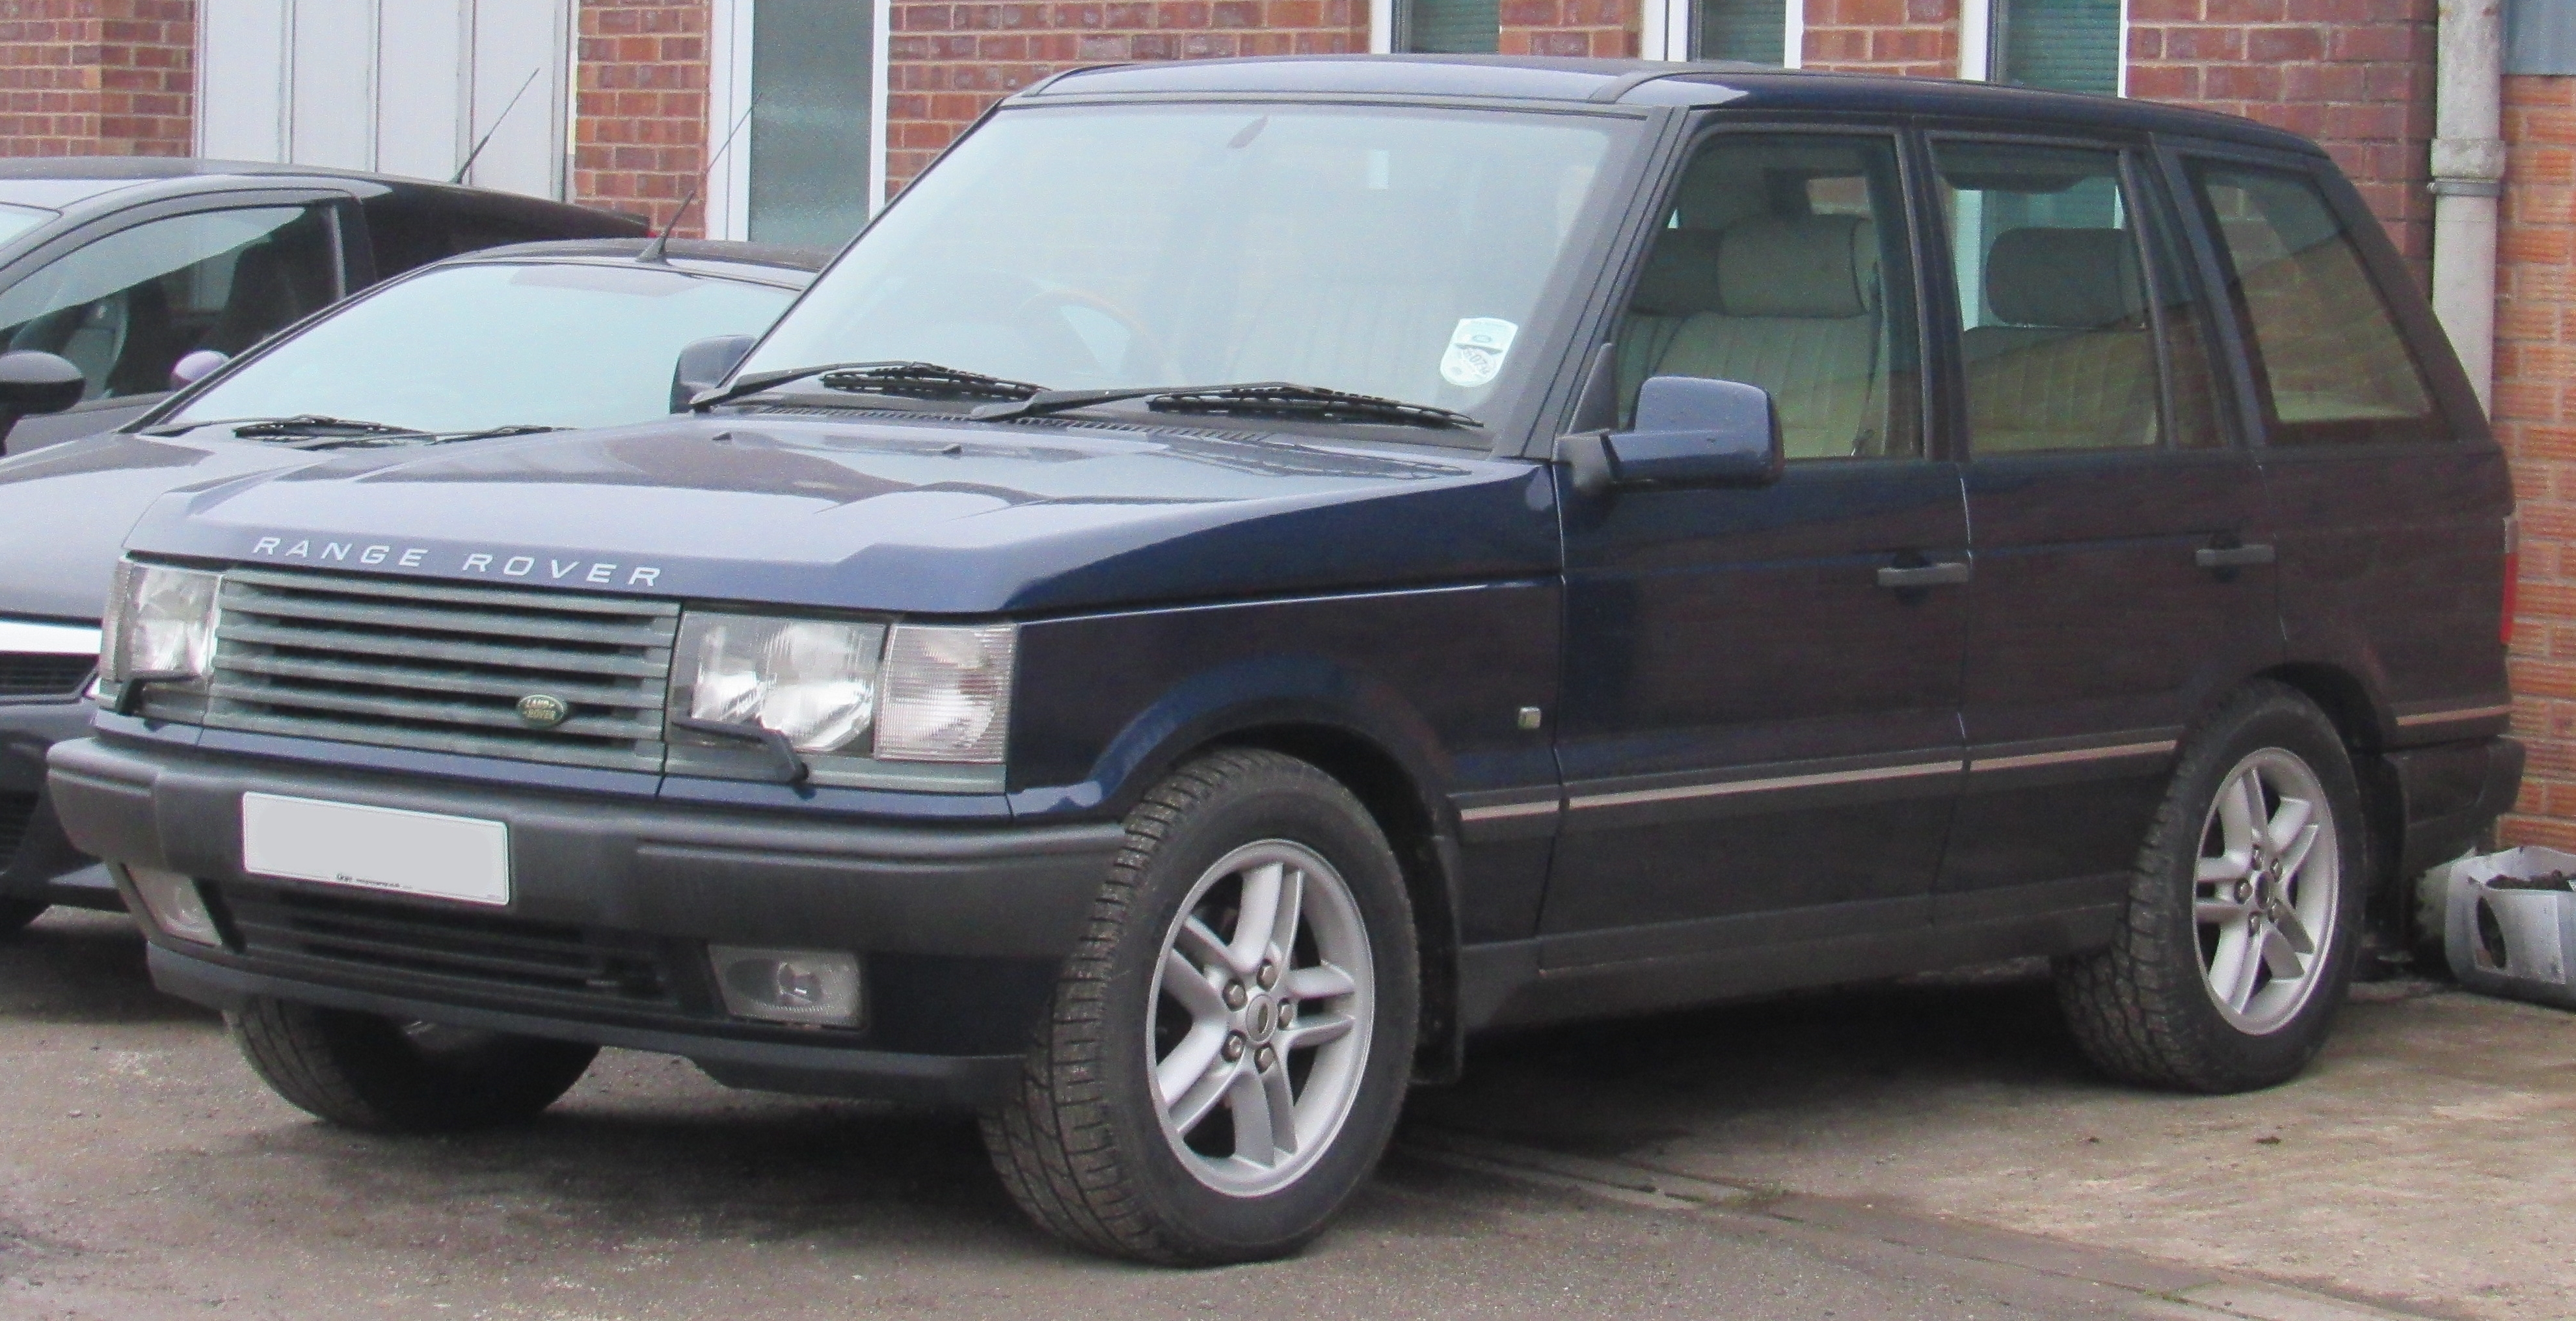 https://upload.wikimedia.org/wikipedia/commons/a/a5/2001_Land_Rover_Range_Rover_Vogue_EFi_4.6.jpg